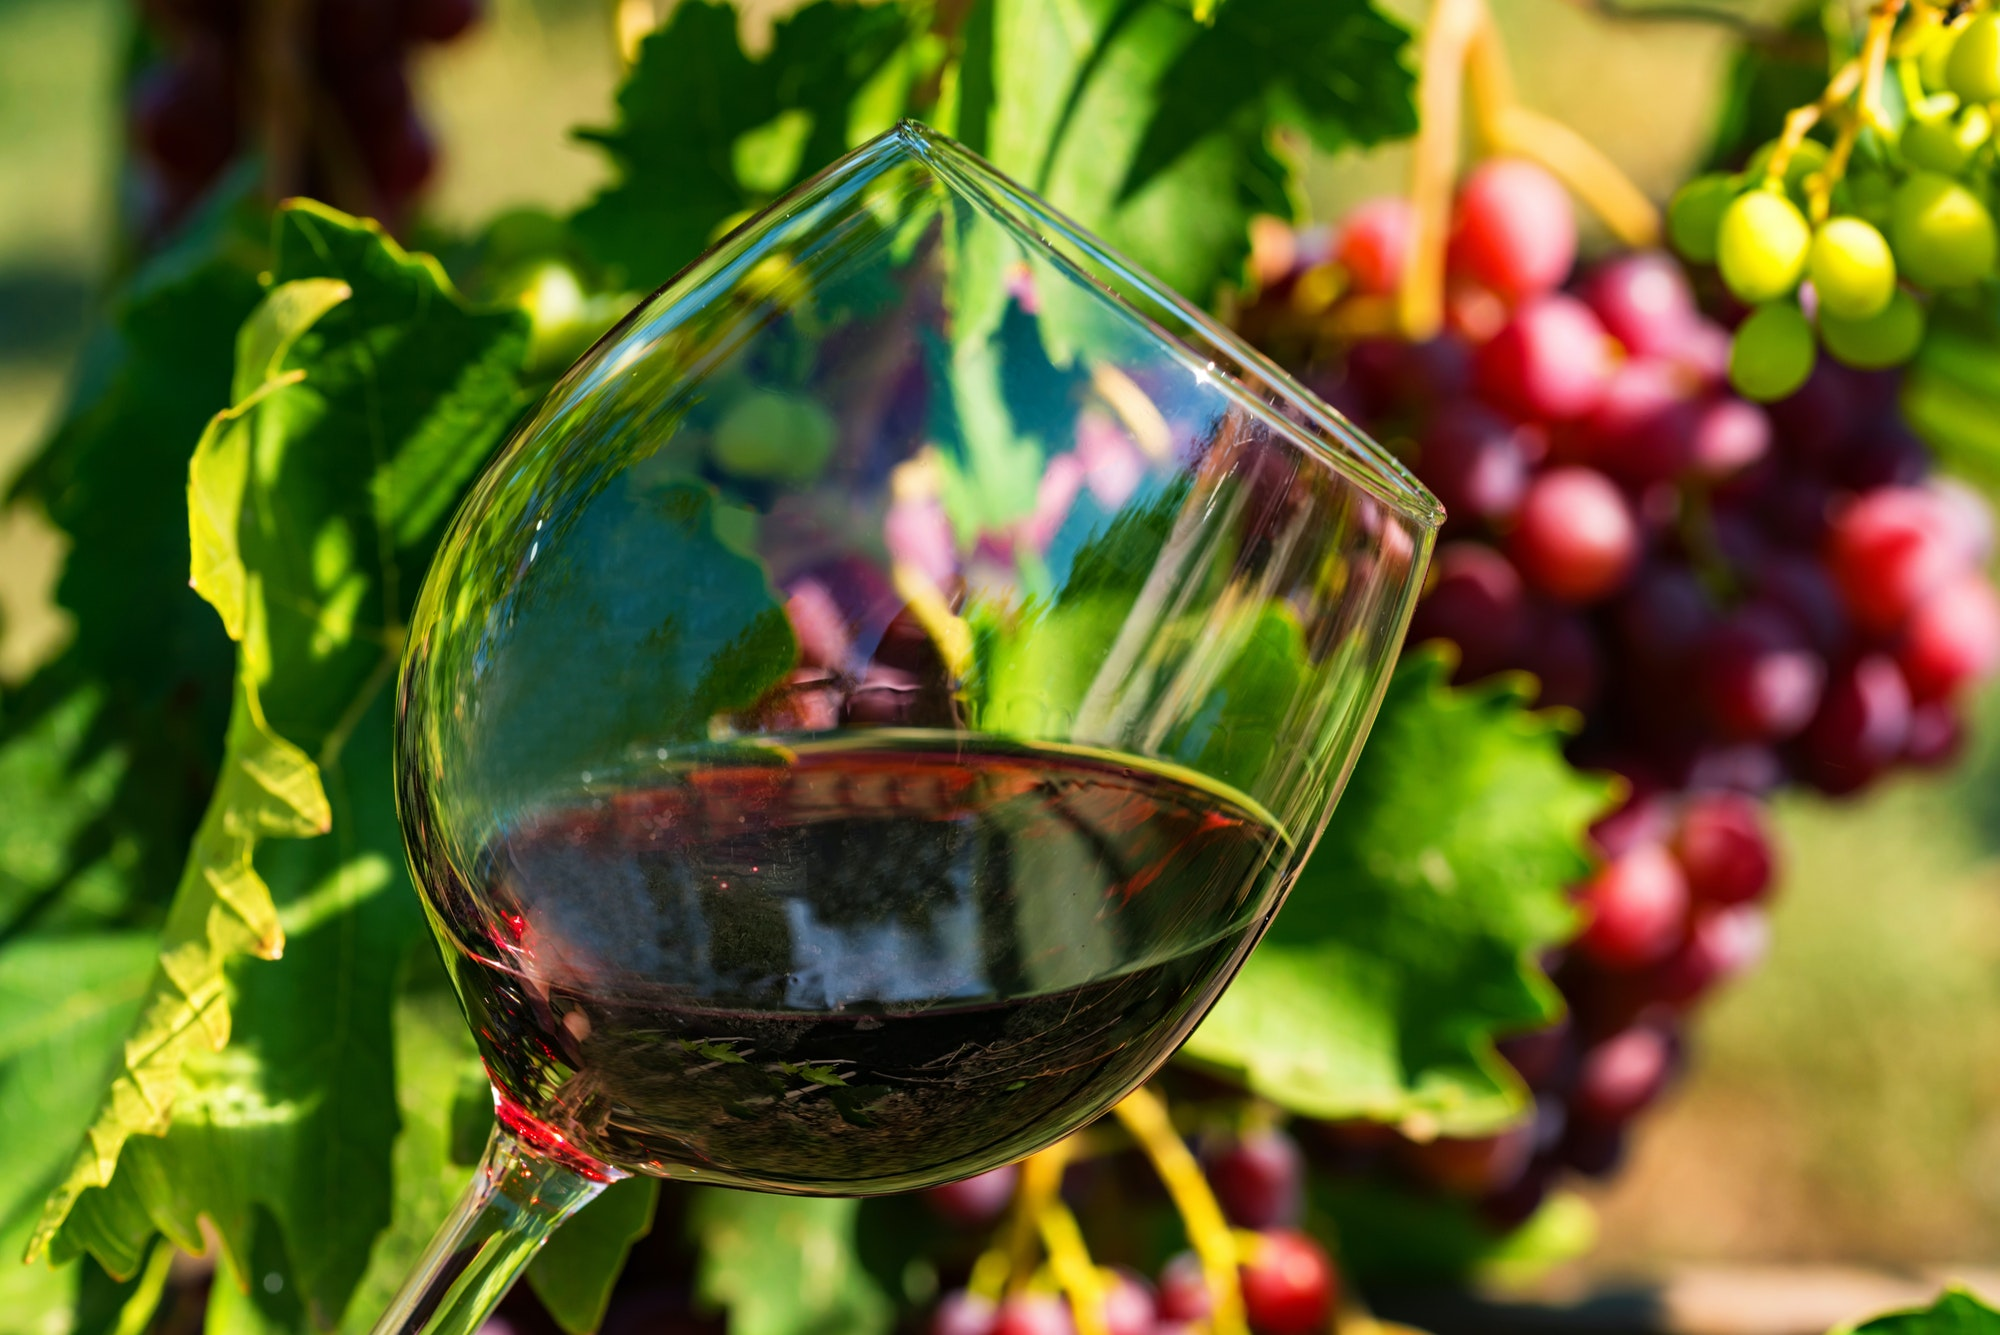 Close up glass with red wine next to grapes in vineyard